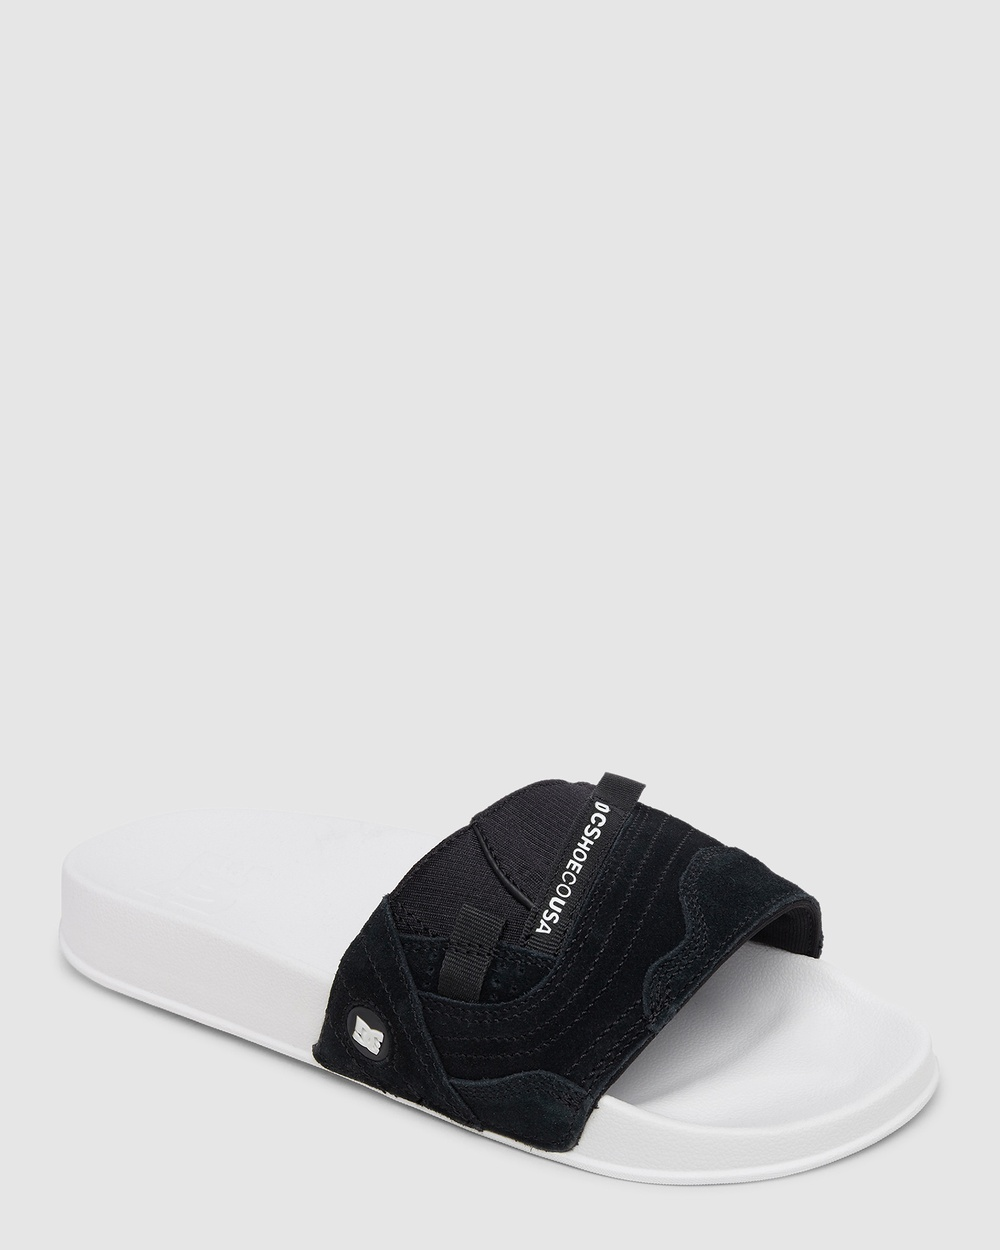 DC Shoes Mens Williams Sliders Slippers & Accessories Black/White